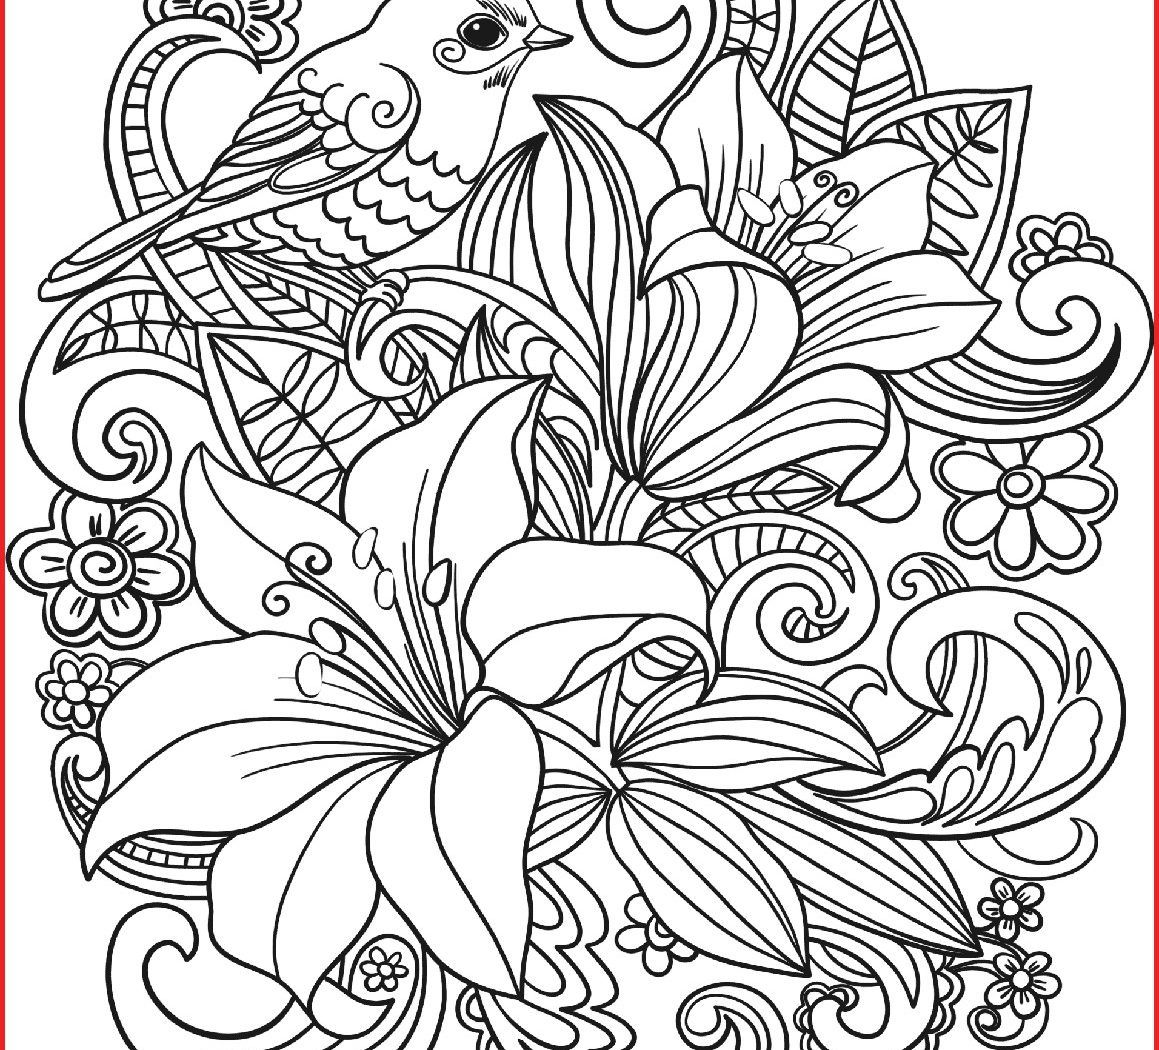 25 Creative Photo Of Spring Flowers Coloring Pages Albanysinsanity Com Flowers Coloring Pages Flower Coloring Pages Coloring Pages